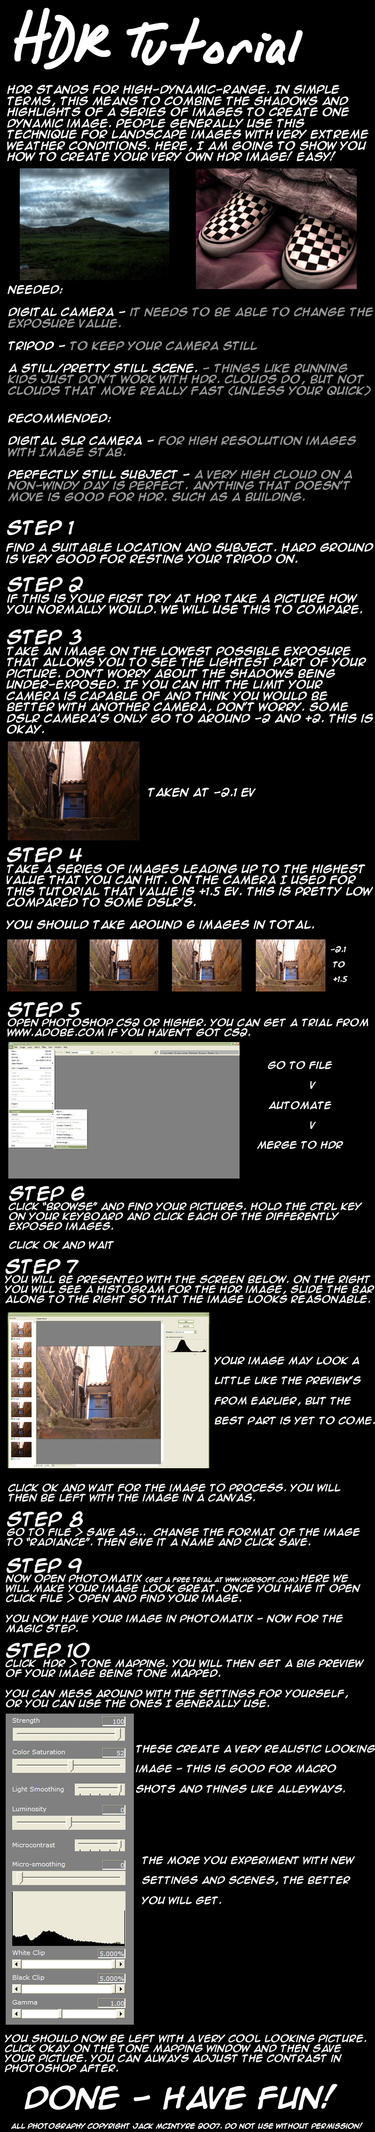 HDR Tutorial by JackMcIntyre